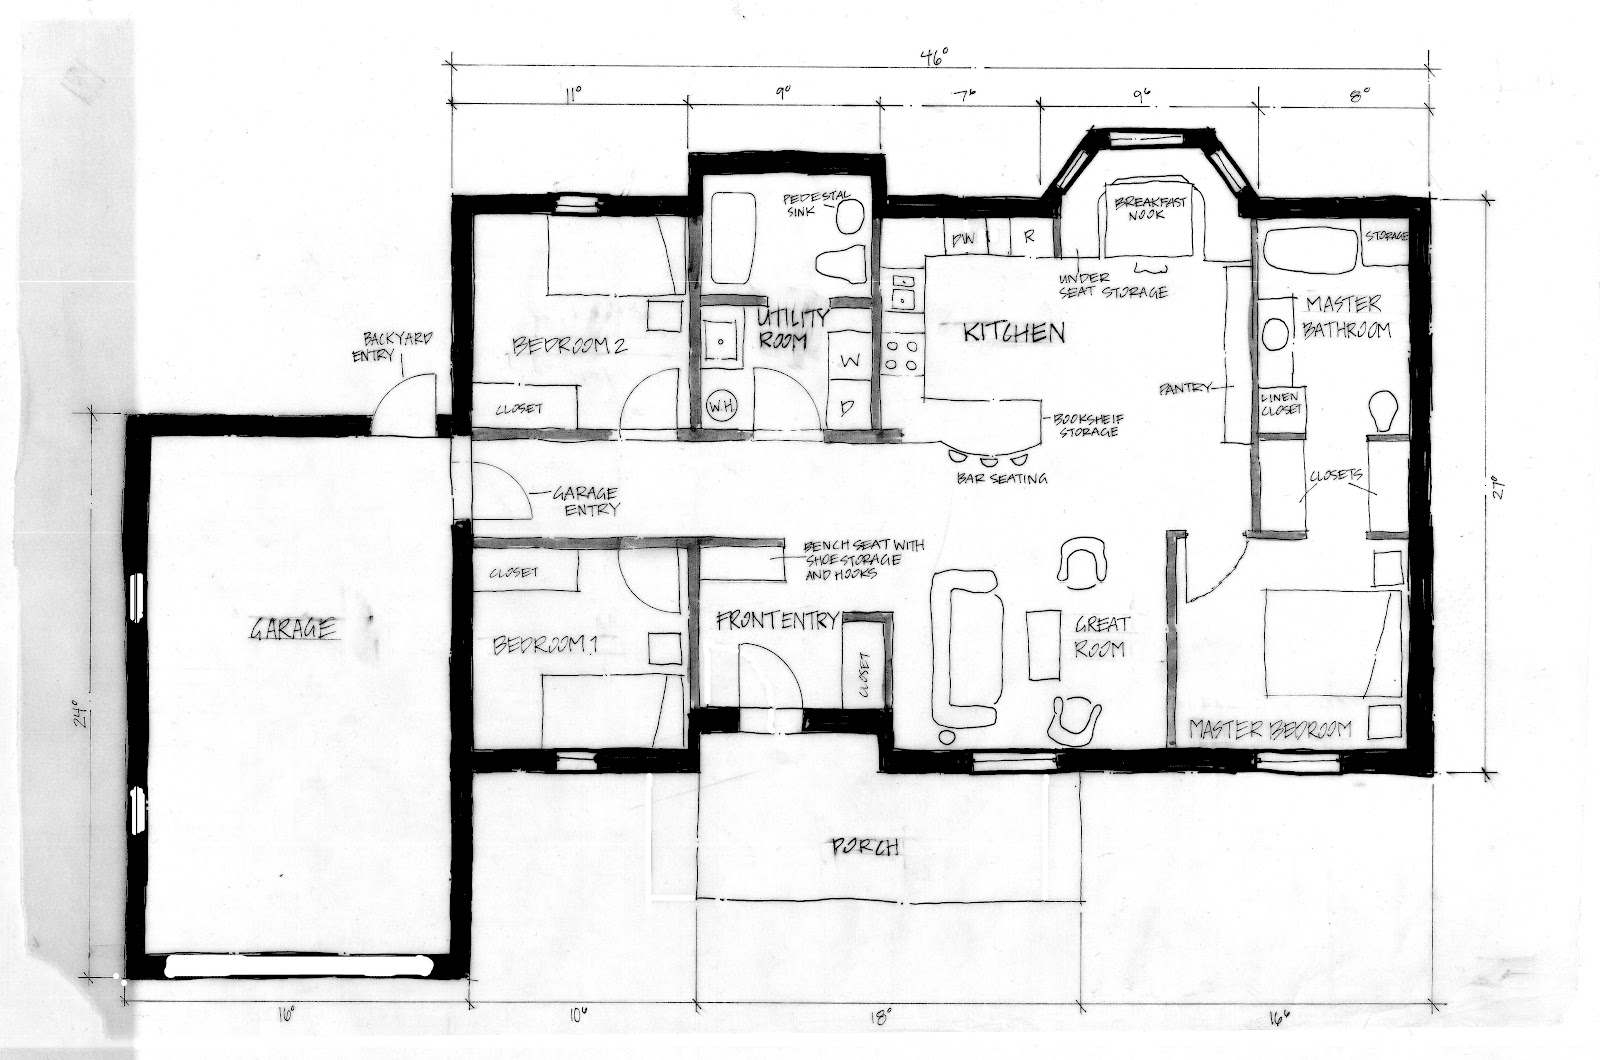 Taylor brock design portfolio habitat for humanity Aging in place home plans